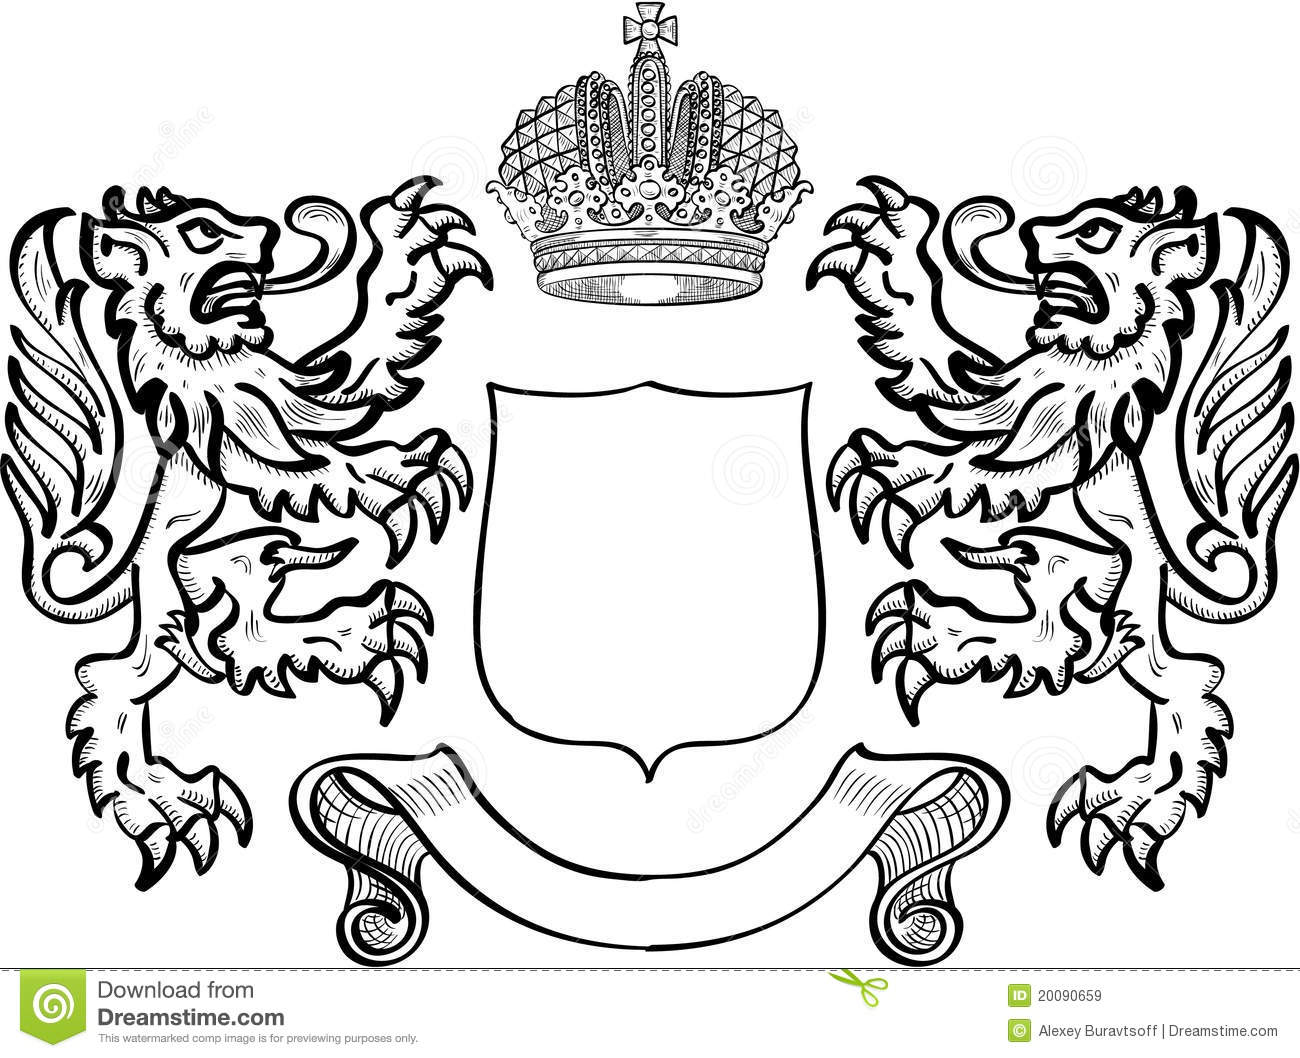 how to draw the india coat of arms